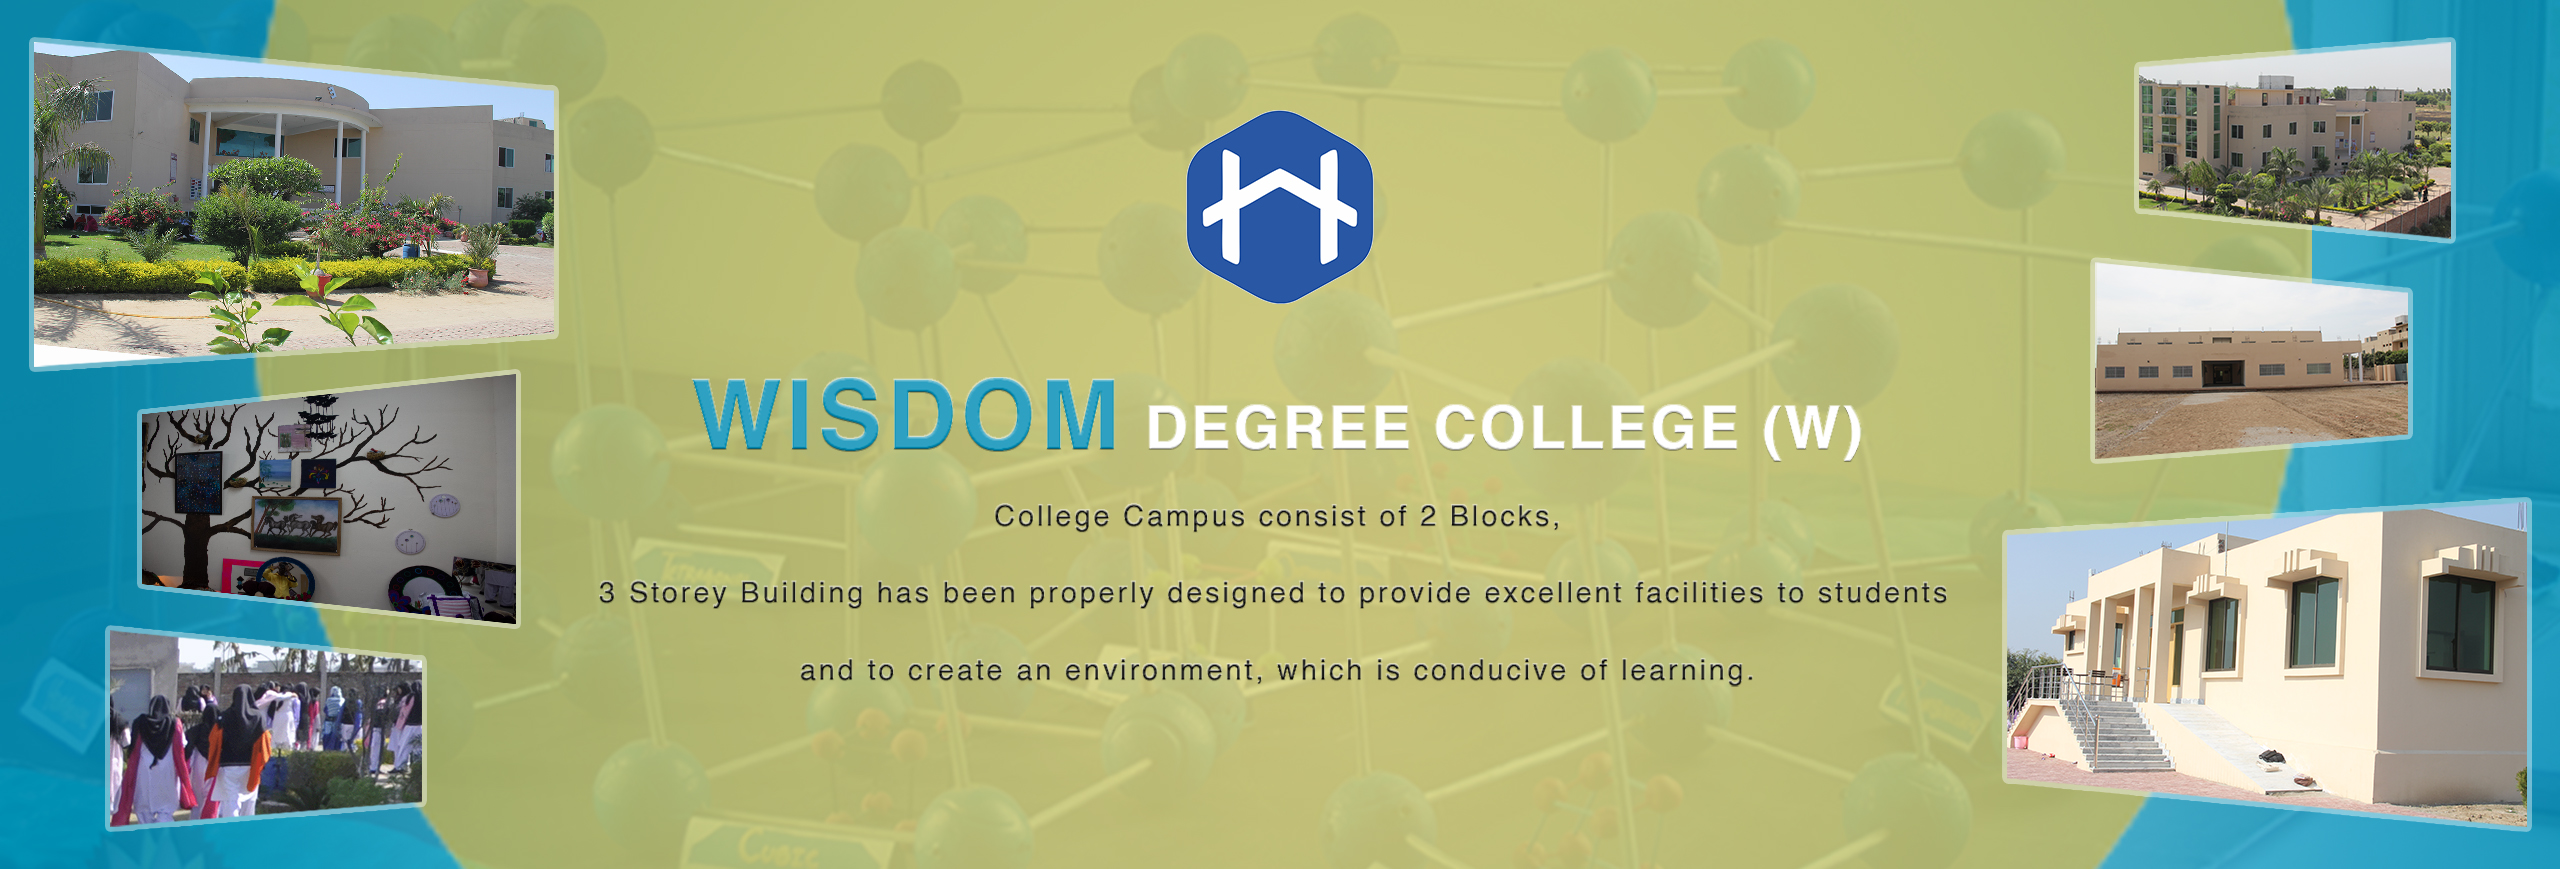 Wisdom Degree College Slider